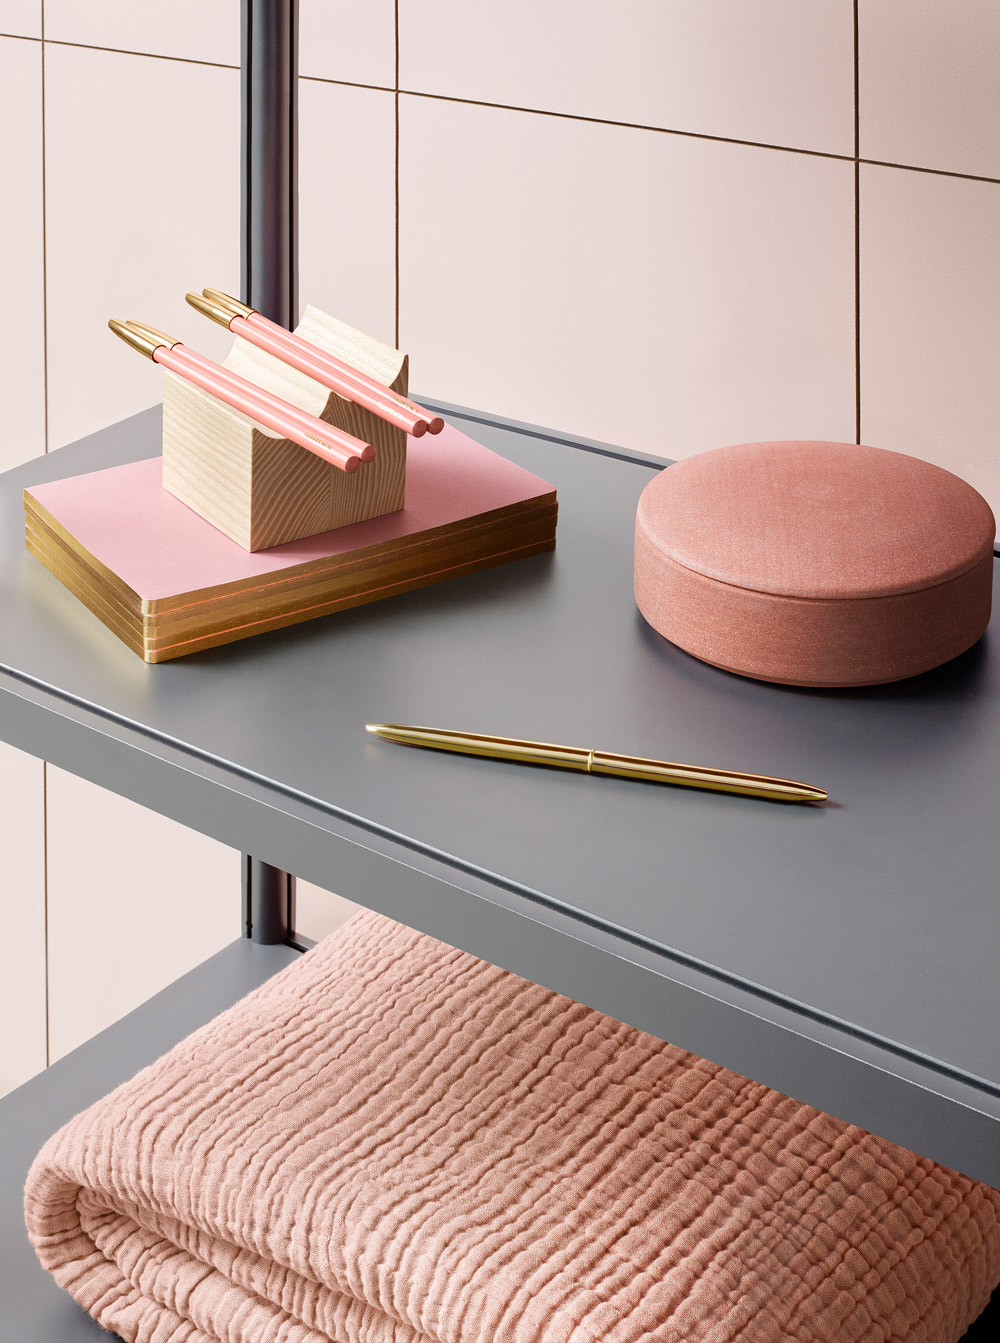 House_of_Grey_Styling_shelf_pink_stationery.jpg